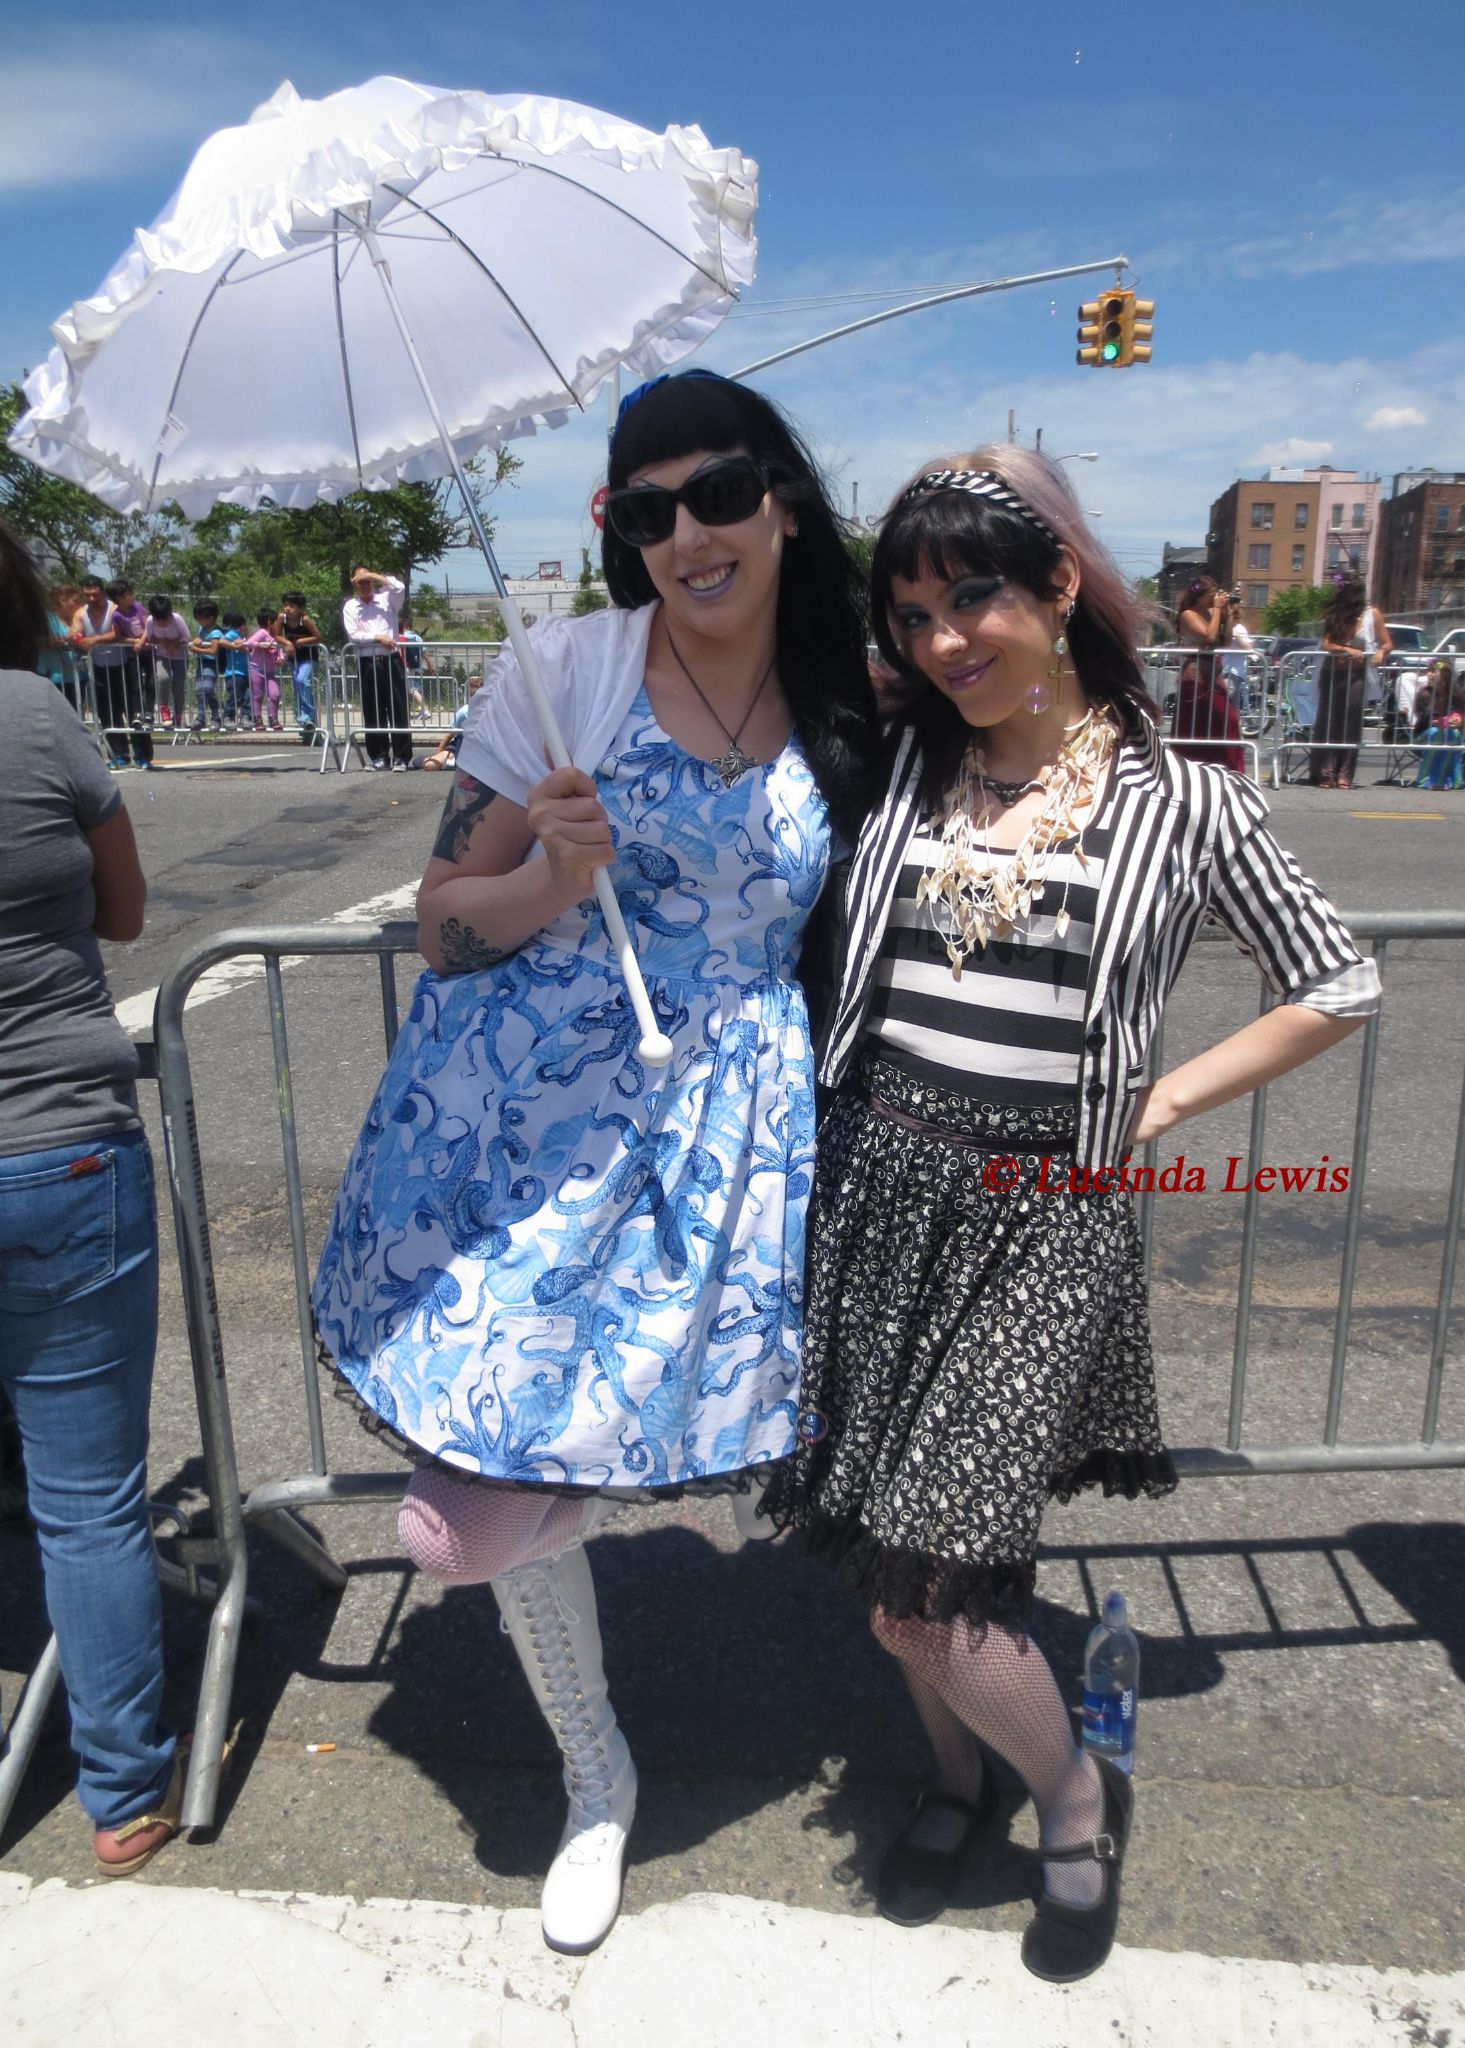 Mermaid Parade watchers at the Coney Island 21 June 2014 by LucindaLewis